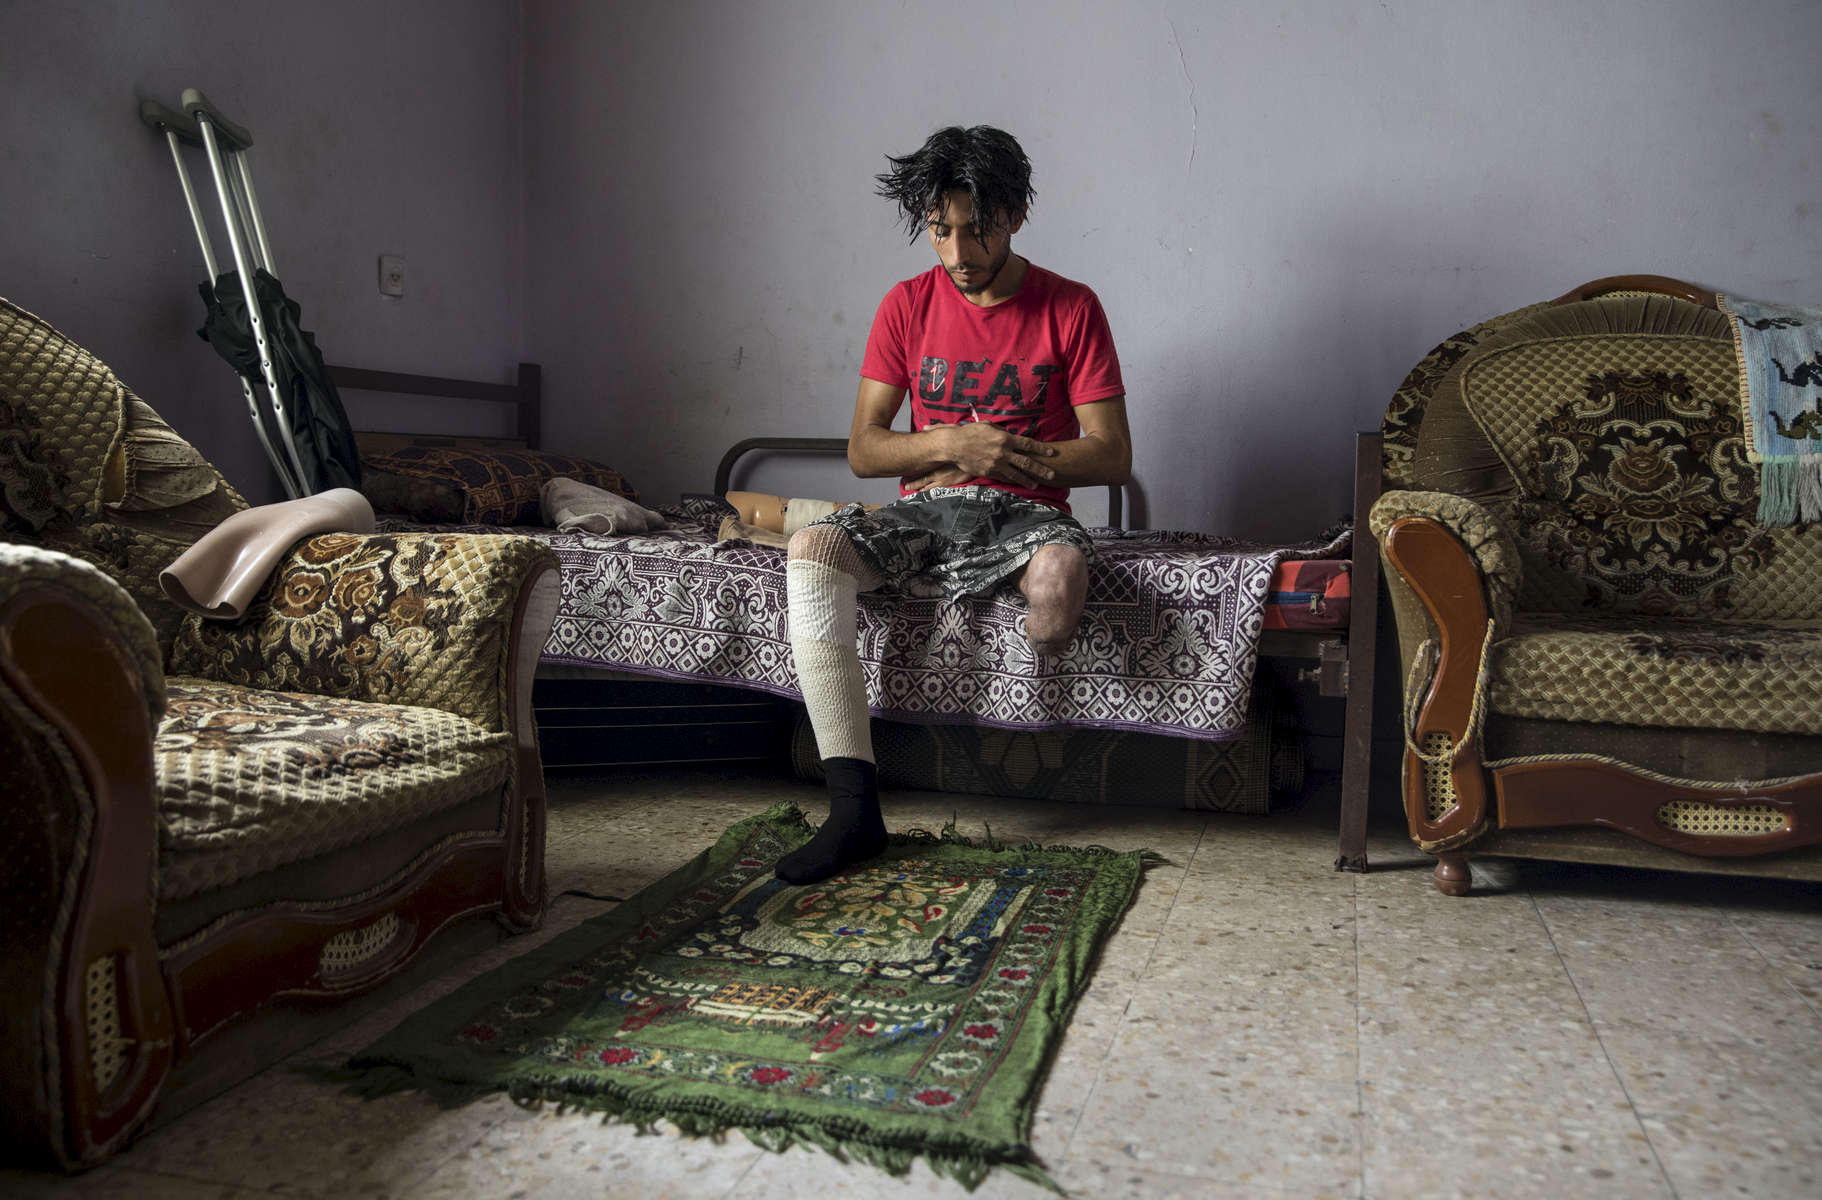 GAZA CITY, GAZA STRIP- MAY 23,2018: Iyad Manar Al-Dawhid, 28, prays in his home on May 23,2018 in Gaza city, Gaza strip. Iyad was injured again on April 7th at the protest when a bullet hit his prosthesis, injuring his other leg. He had his left leg amputated in a car accident in 2011. According to the International Committee of the Red Cross (ICRC), 13,000 Palestinians were wounded (as of June 19, 2018), the majority severely, with some 1,400 struck by three to five bullets. No Israelis were physically harmed during this time period, Israel's use of deadly force was condemned during the UN general assembly on June 13 th along with other human rights organizations.Everyone is well aware that Gaza's two million inhabitants are trapped in a cycle of violence and poverty, created by policies and political decisions on both sides. The problems and complications affecting Gaza today are overwhelming. The world, seemingly accustomed to the suffering of the Gazan people turns a blind eye. (Photo by Paula Bronstein )